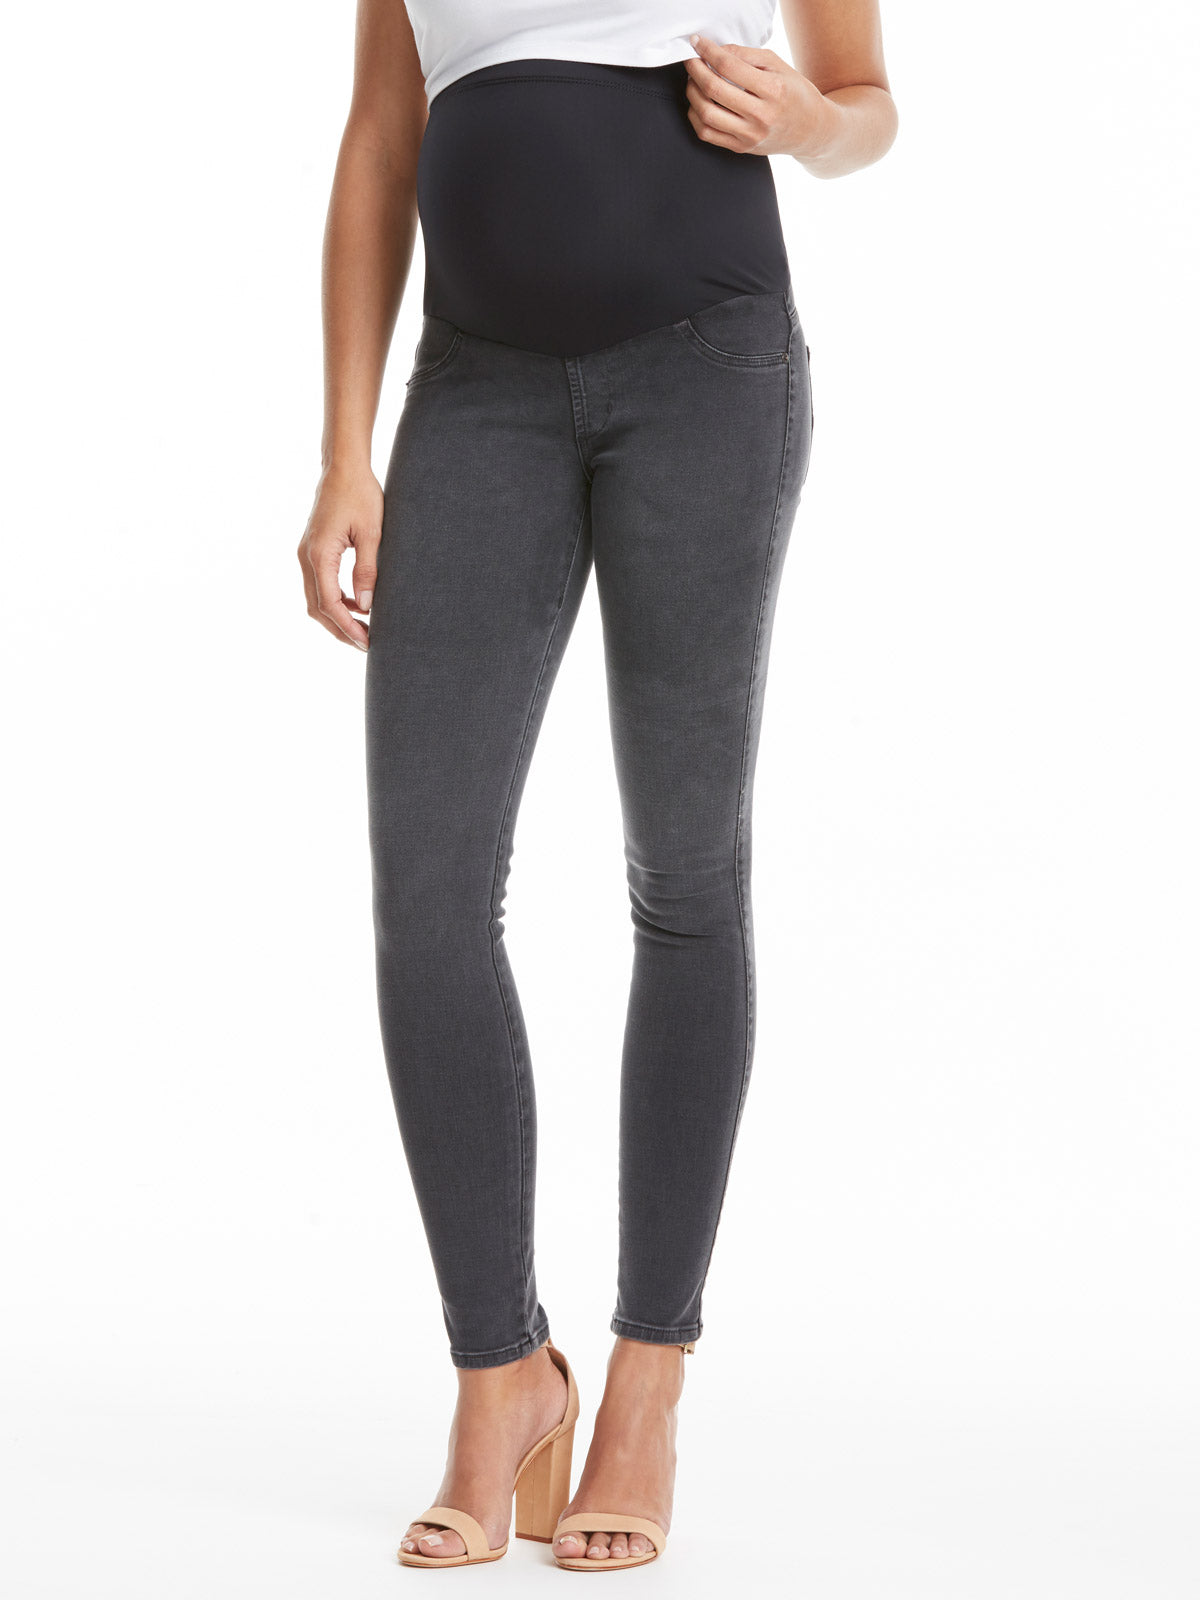 TILDEN | James Jeans Twiggy Maternity Jean - Slate II